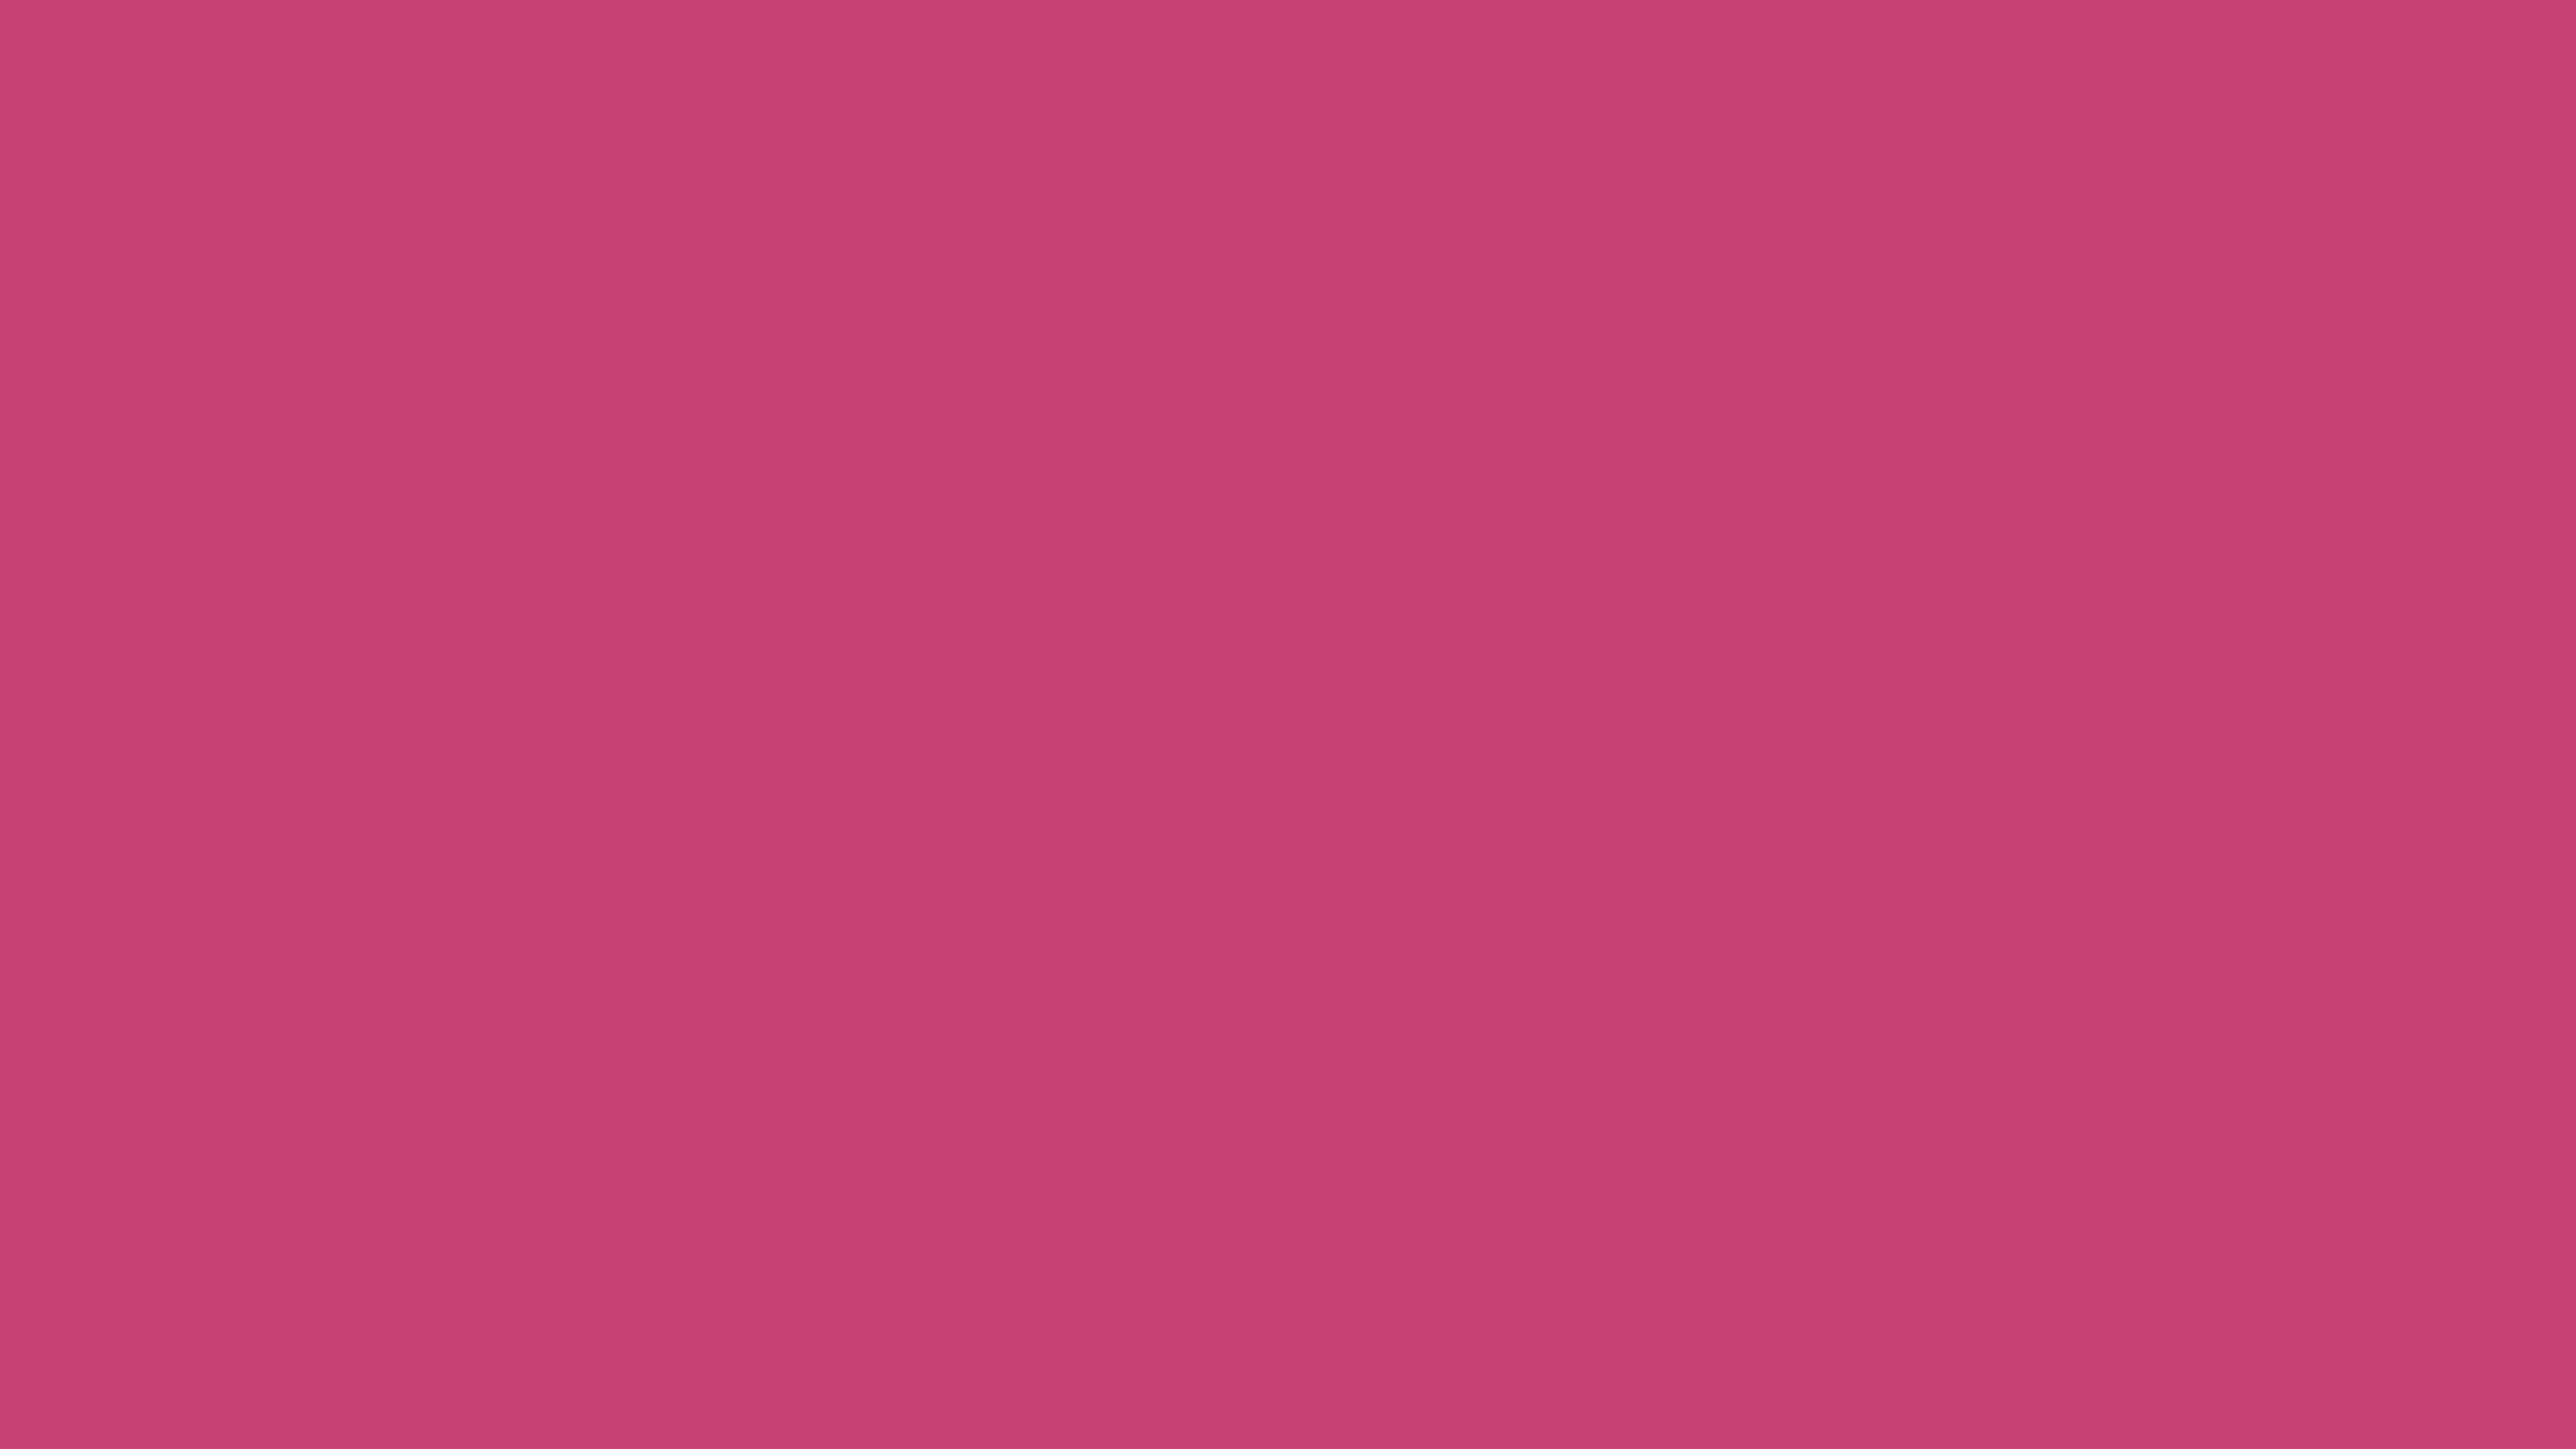 4096x2304 Fuchsia Rose Solid Color Background